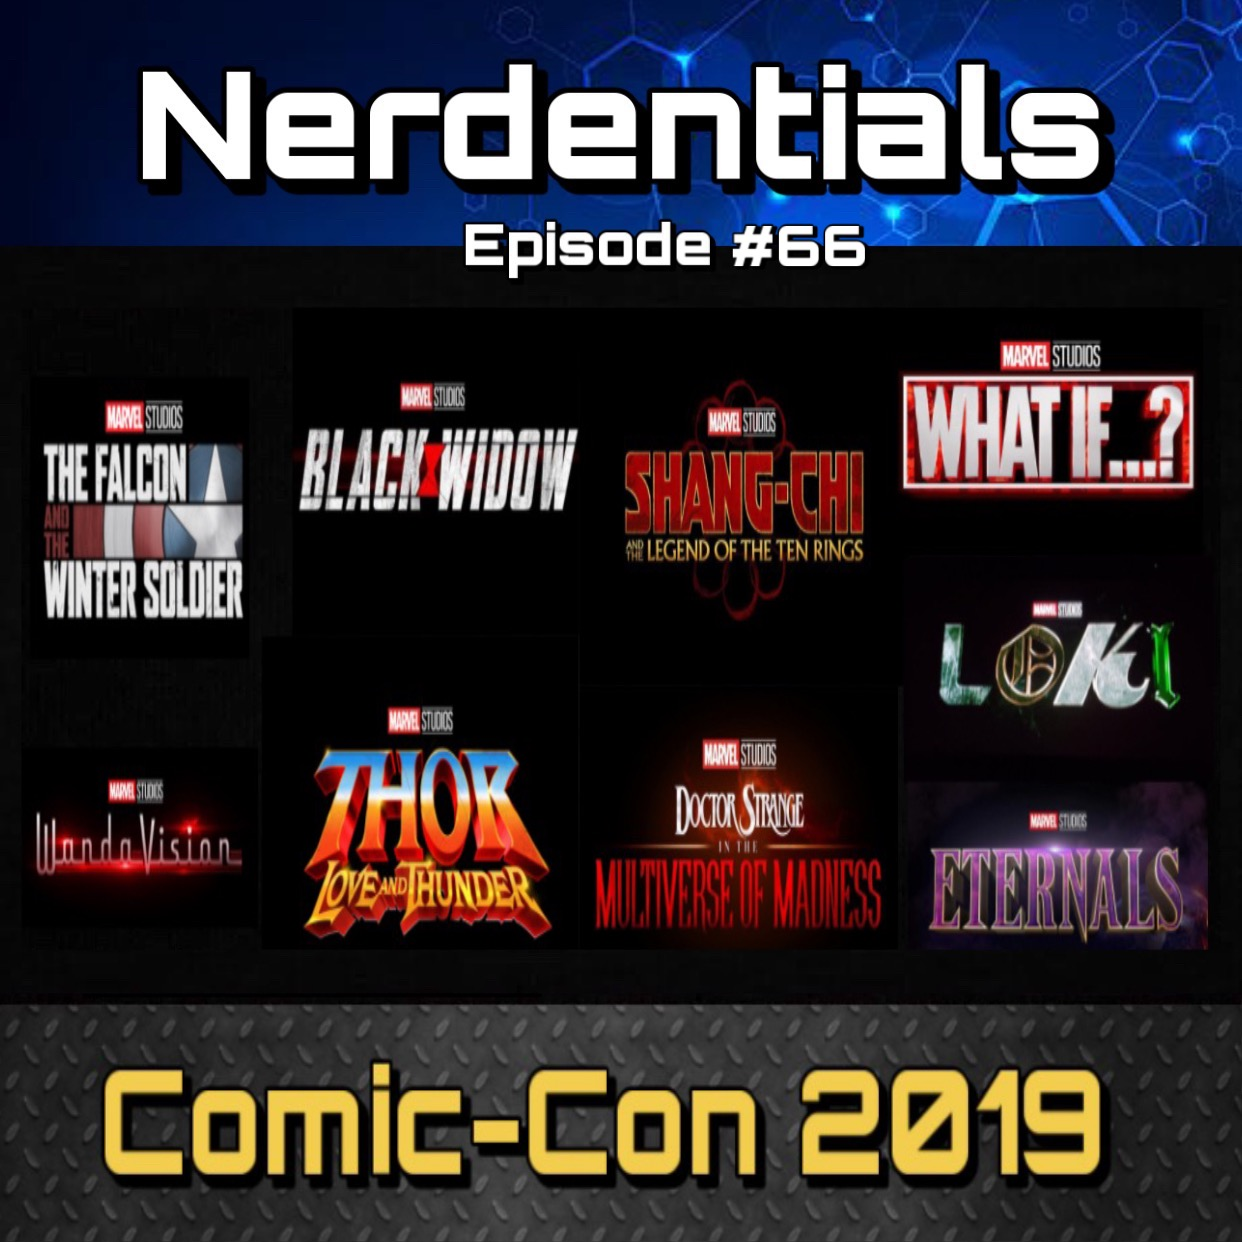 - Welcome to Nerdentials! Your weekly dose of the nerdy essentials. Covering Film, TV, Video Games and Comics.This week your Nerd hosts, Joe, Matt and Nick cover everything Marvel that was announced from the San Diego Comic-Con!First a lively discussion ensues about whether or not we need the Disney + service to stay in the loop now that Kevin Fiege is managing the MCU films and TV series for phase 4!Then the nerds completely break down everything we know about the shows and movies announced for the next Marvel Phase!